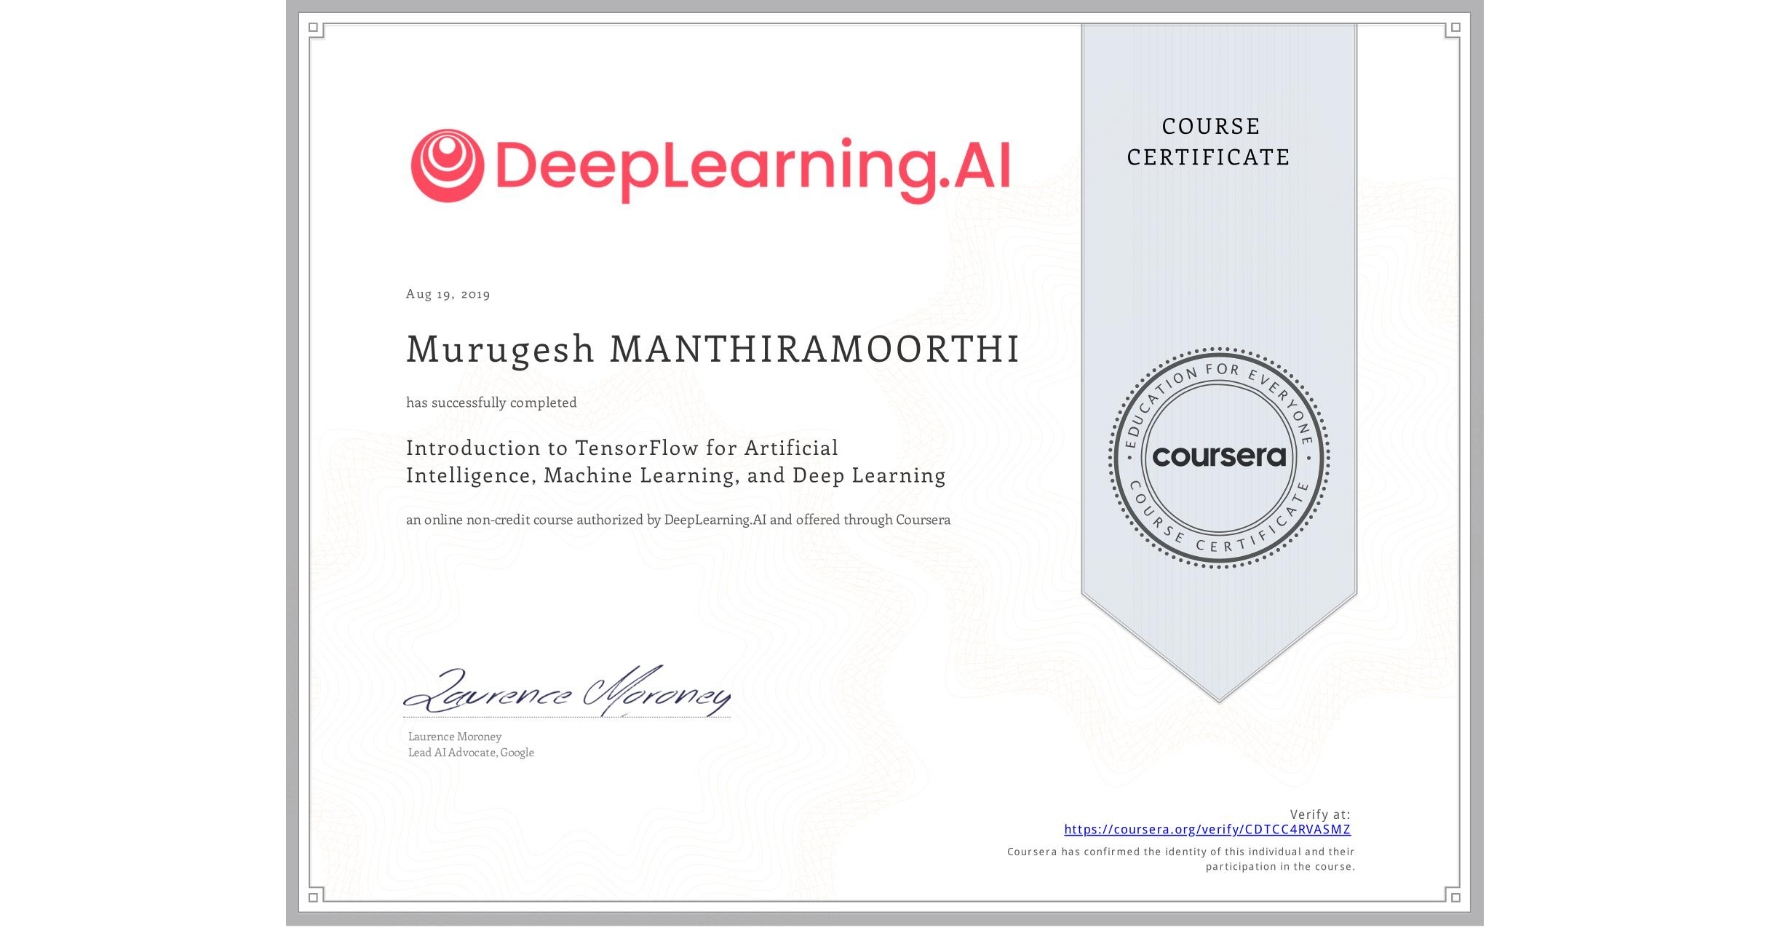 View certificate for Murugesh Manthiramoorthi, Introduction to TensorFlow for Artificial Intelligence, Machine Learning, and Deep Learning, an online non-credit course authorized by DeepLearning.AI and offered through Coursera